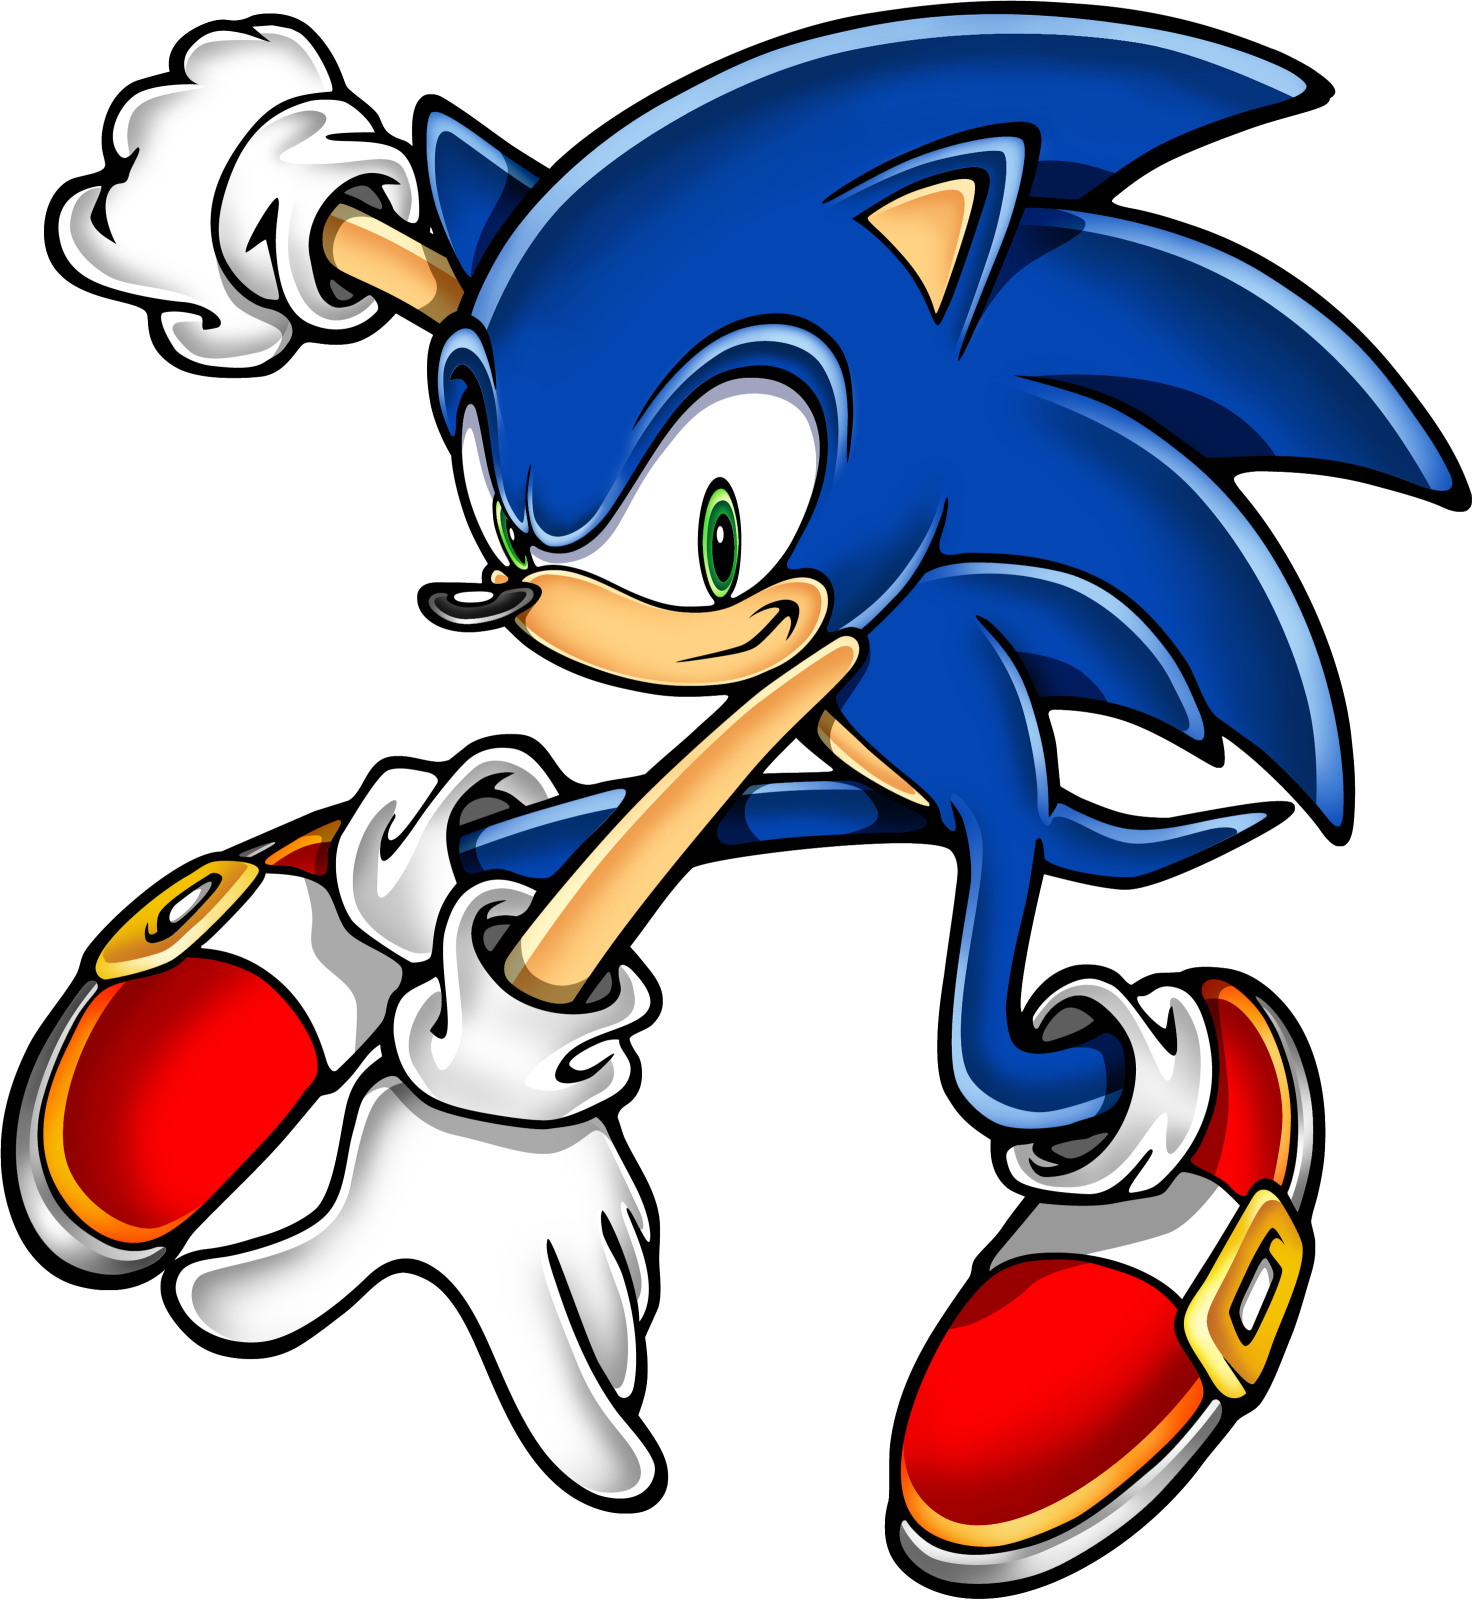 Sonic Channel images Sonic Channel Sonic HD wallpaper and background photos - Sonic HD PNG